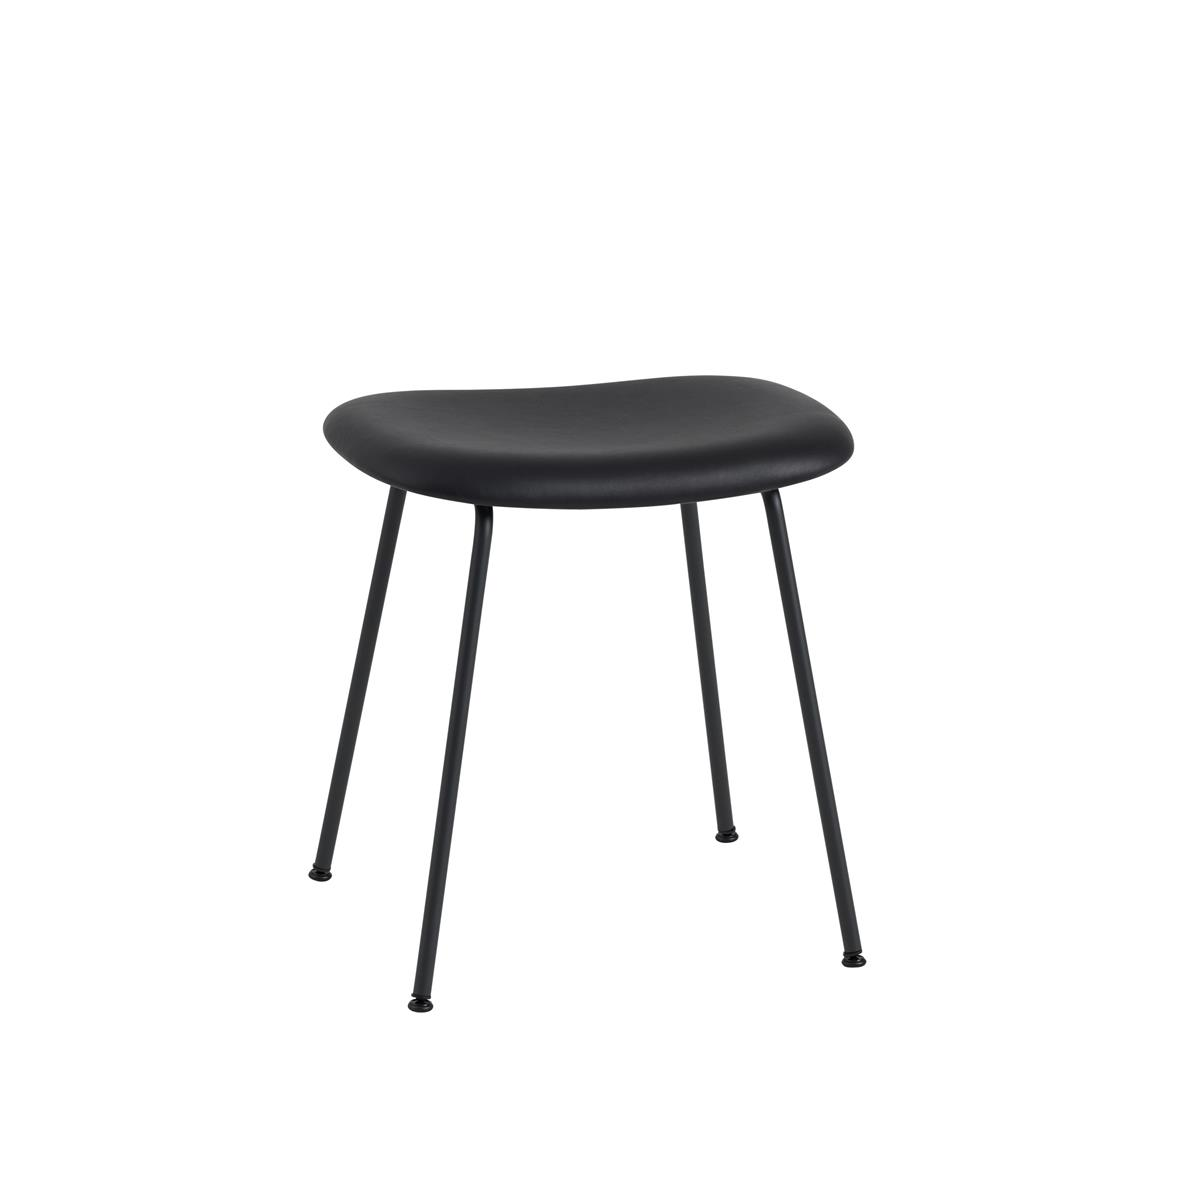 Fiber Stool Tube Base H45 - Black Silk Leather & Black